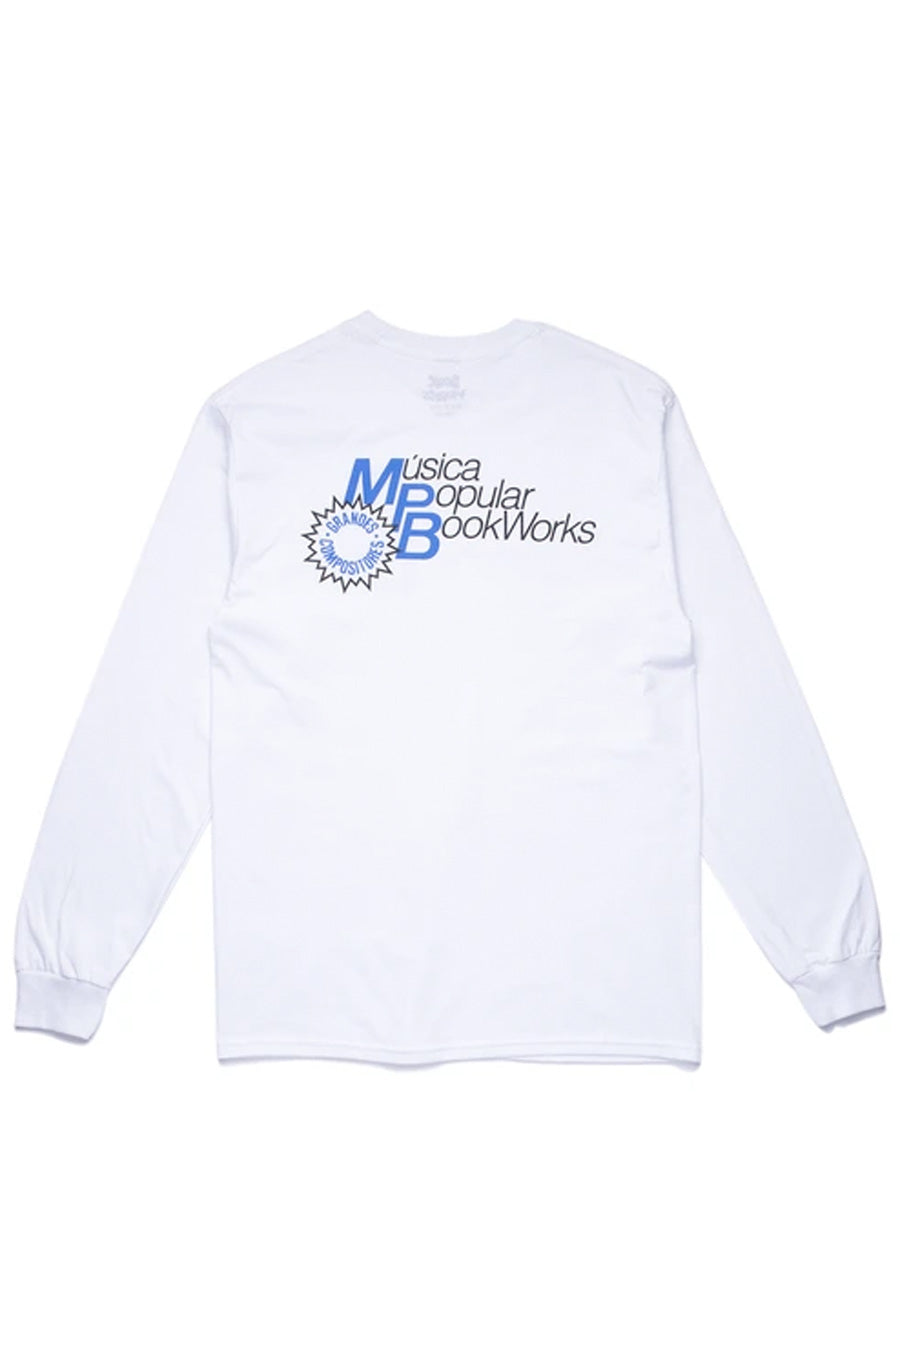 Book Works - White MPB Long Sleeve T-Shirt | 1032 SPACE